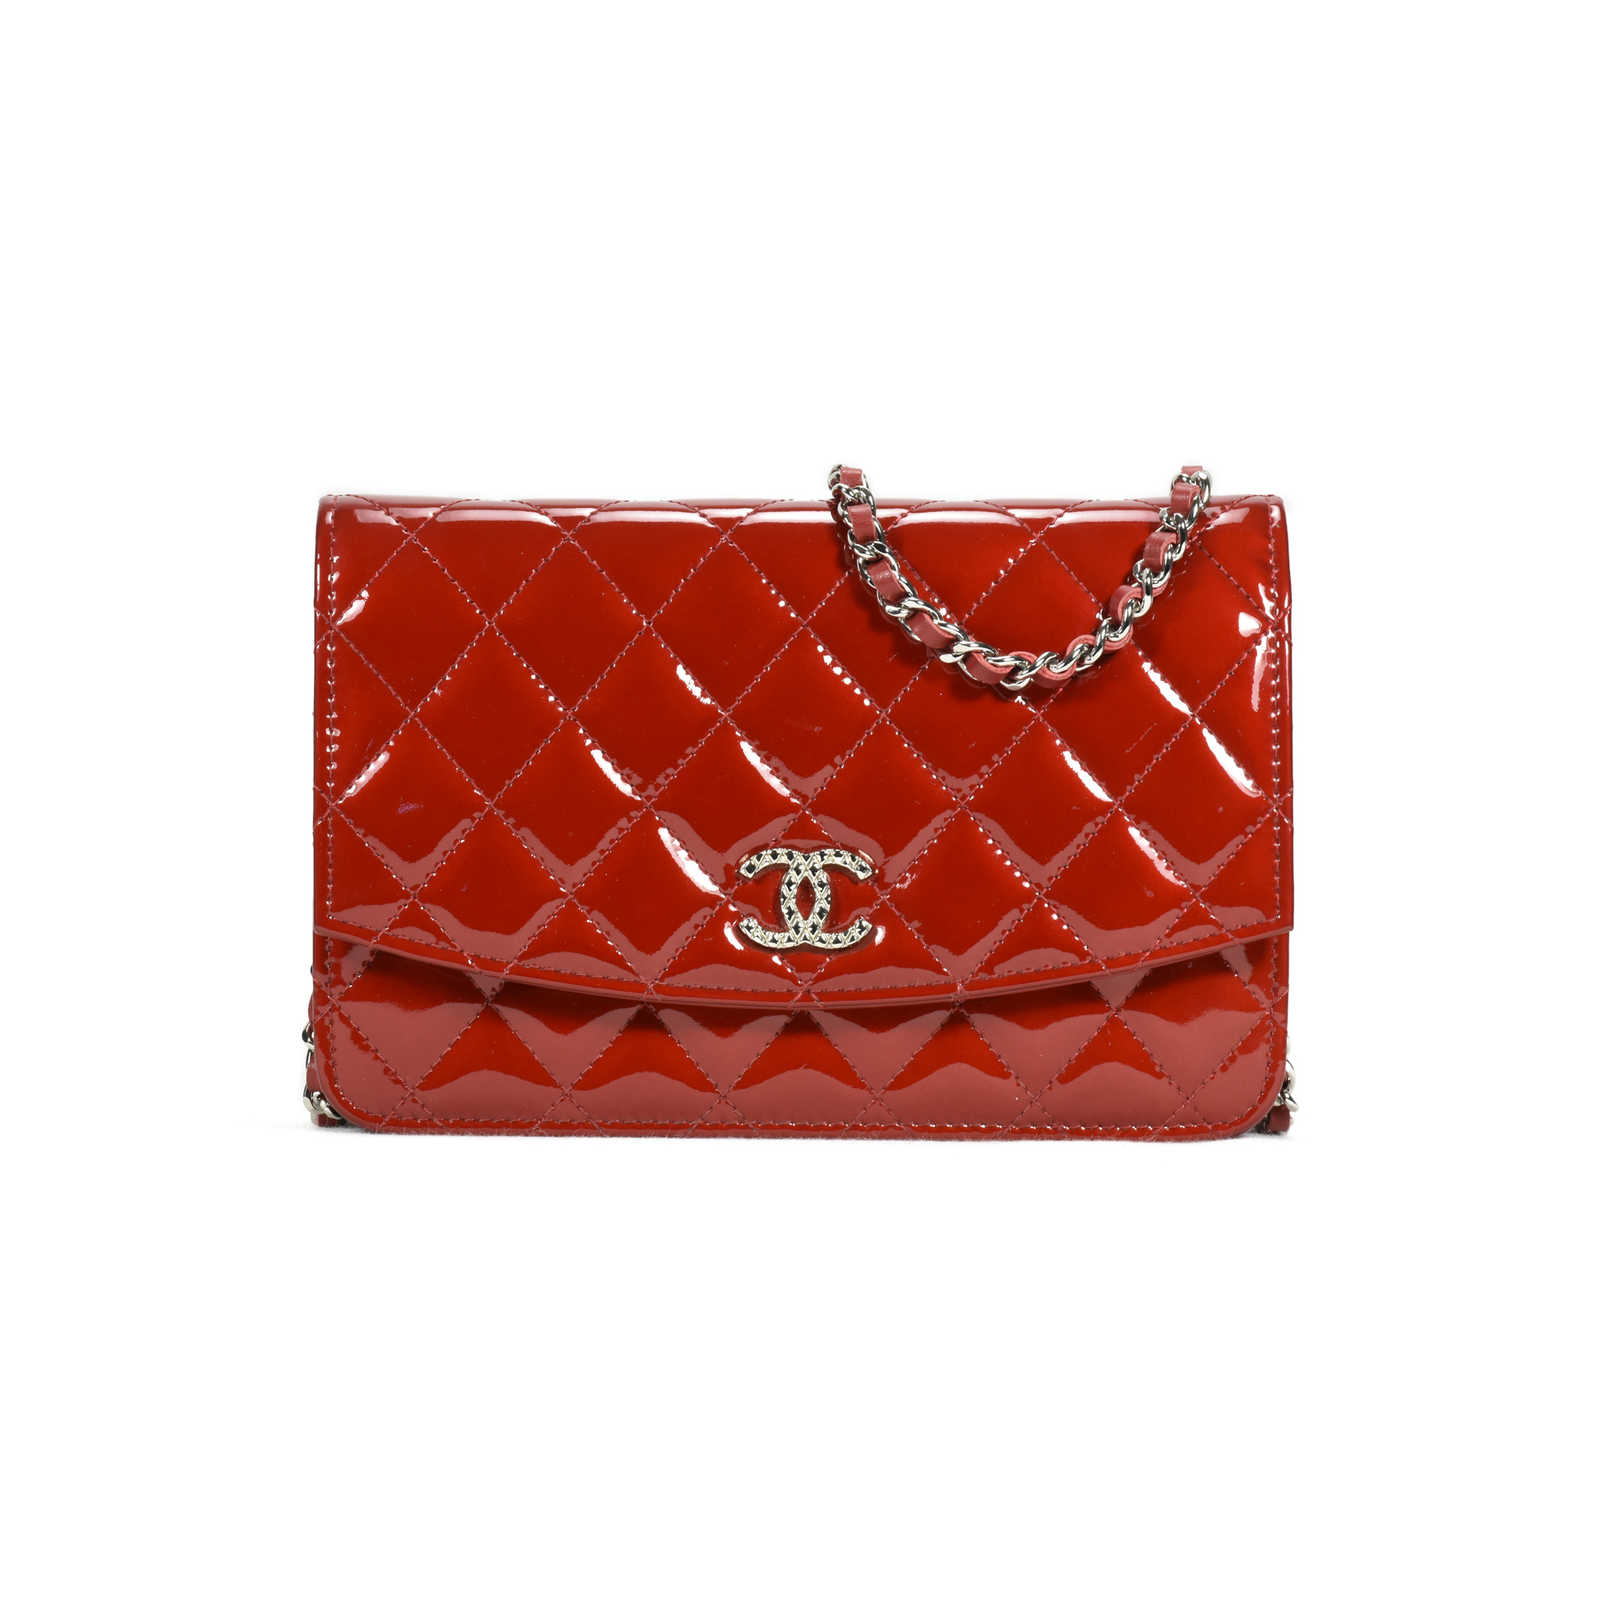 5ade2fe0 Authentic Second Hand Chanel Patent Brilliant Wallet on Chain (PSS ...